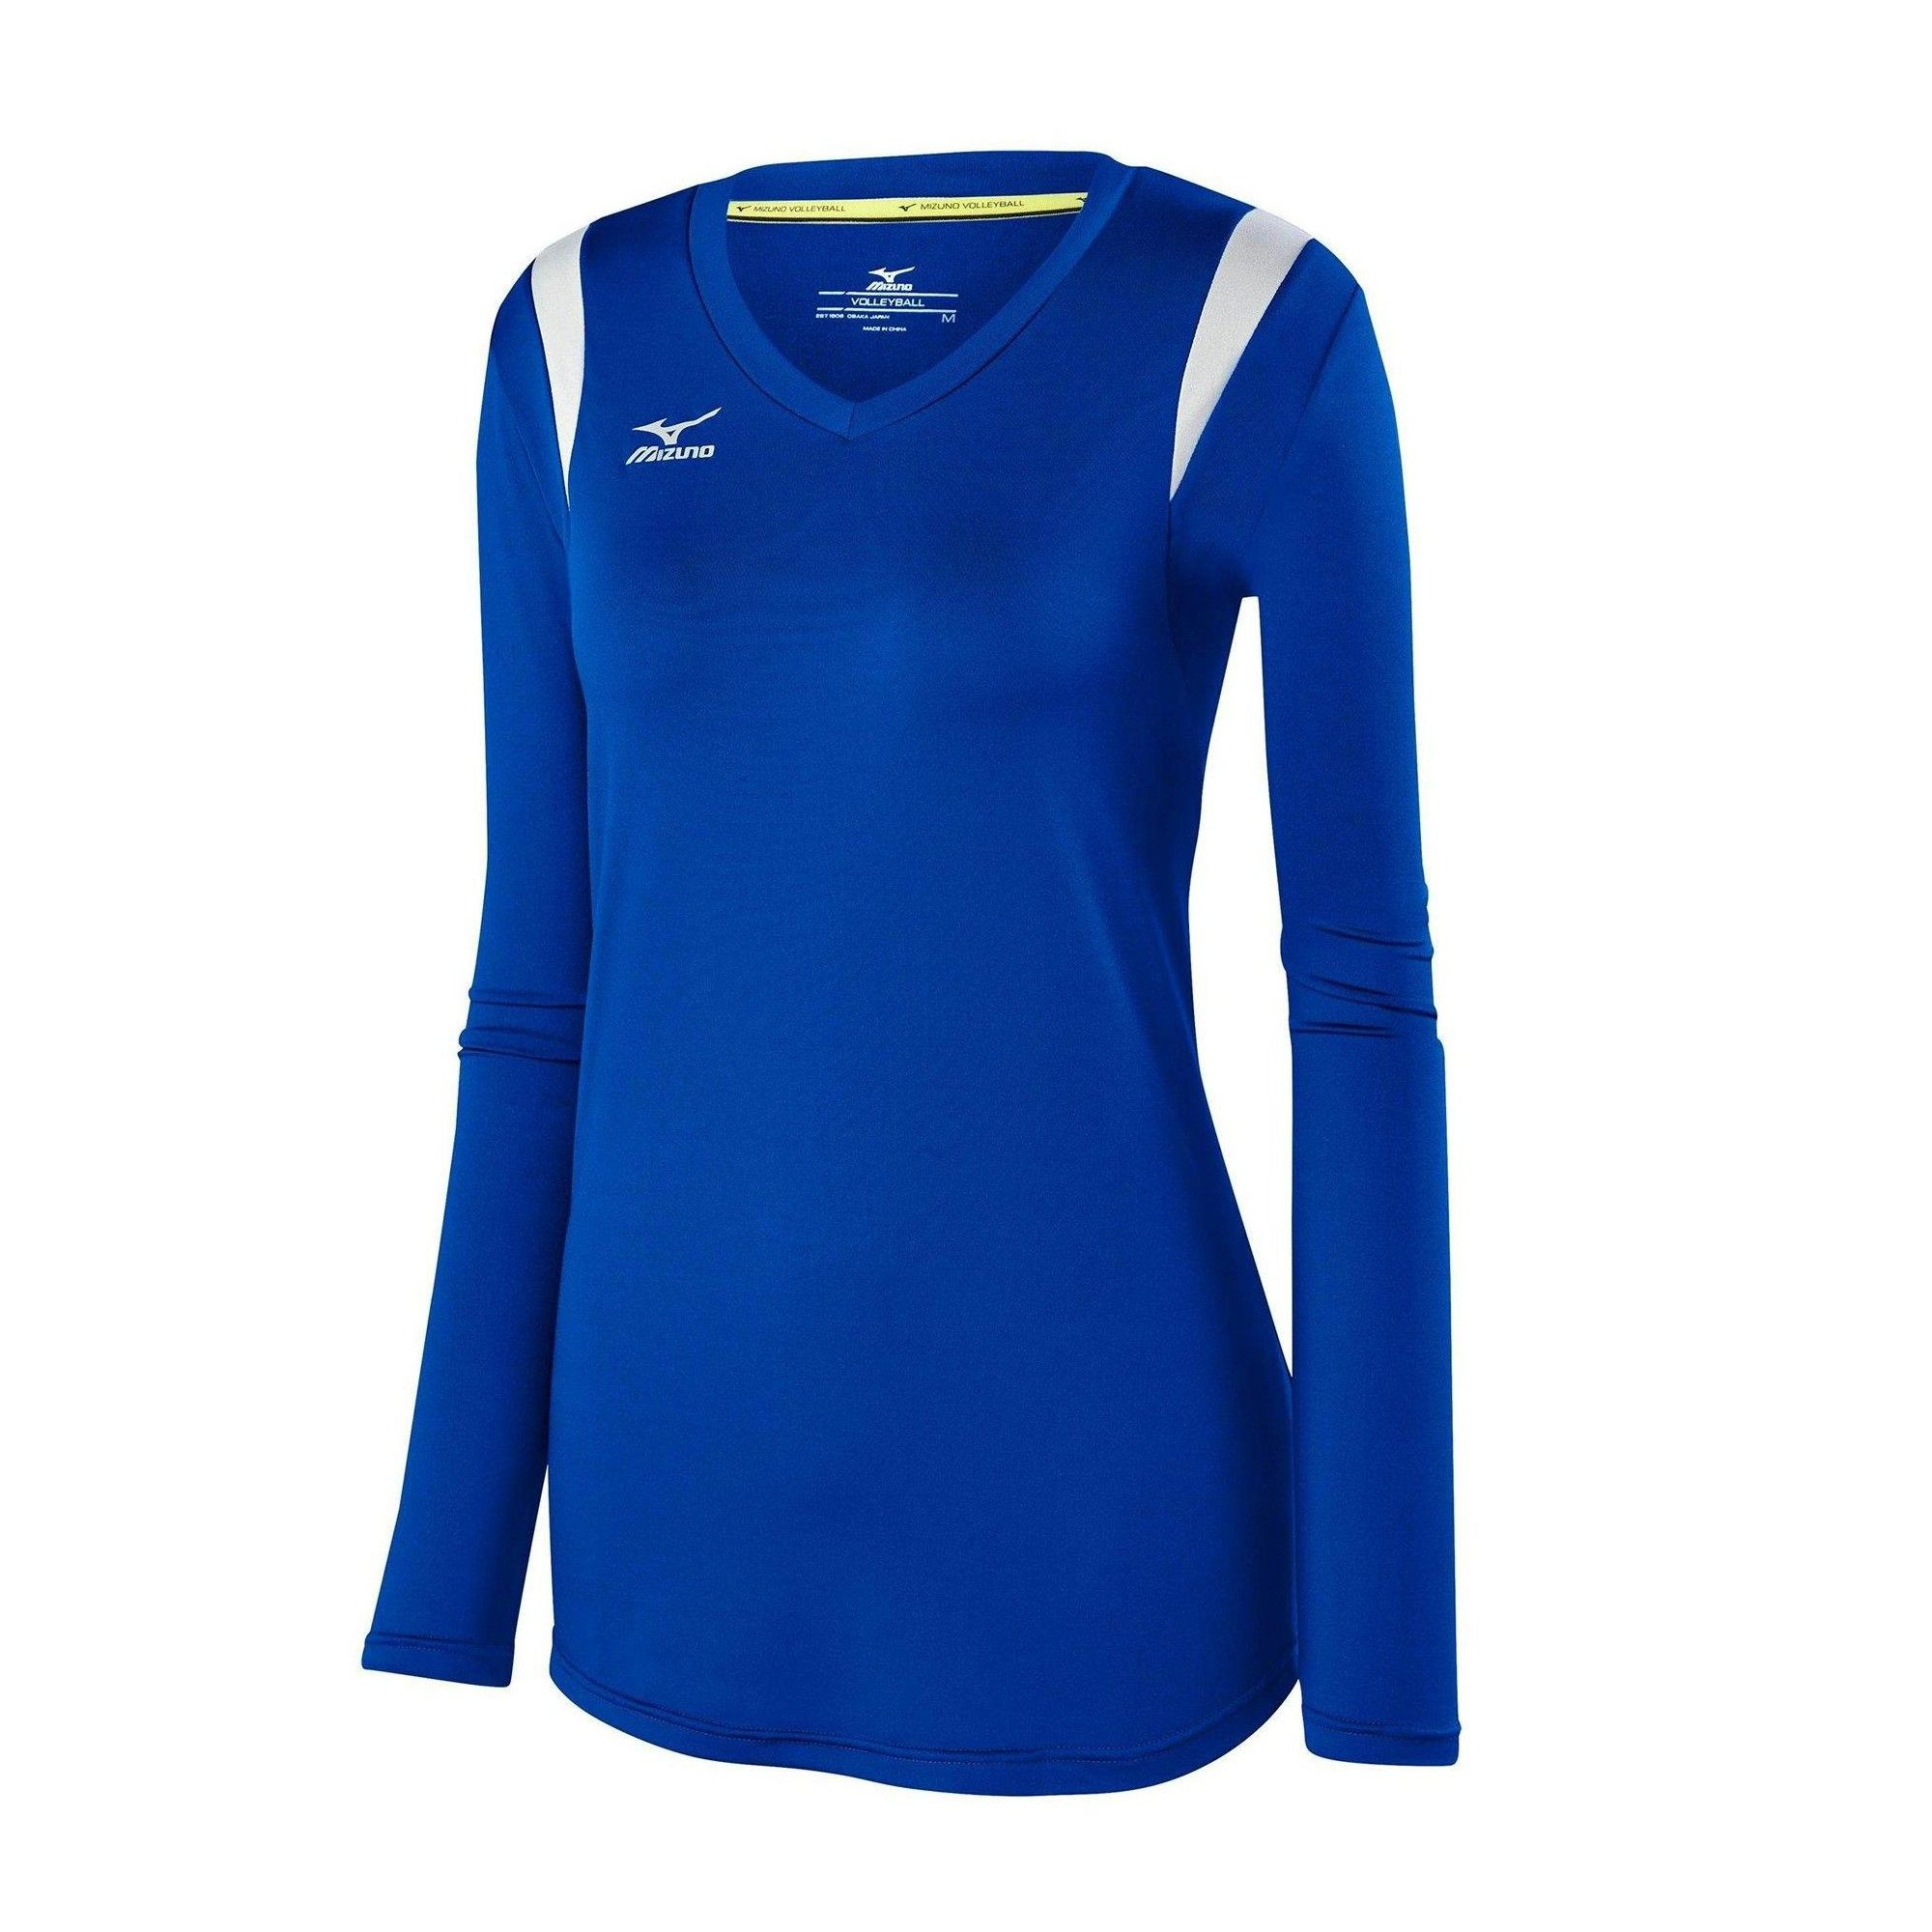 Mizuno Womens Volleyball Apparel Balboa 5 0 Long Sleeve Volleyball Jersey 440645 Size Extra Large Ro Volleyball Outfits Volleyball Jerseys Women Volleyball